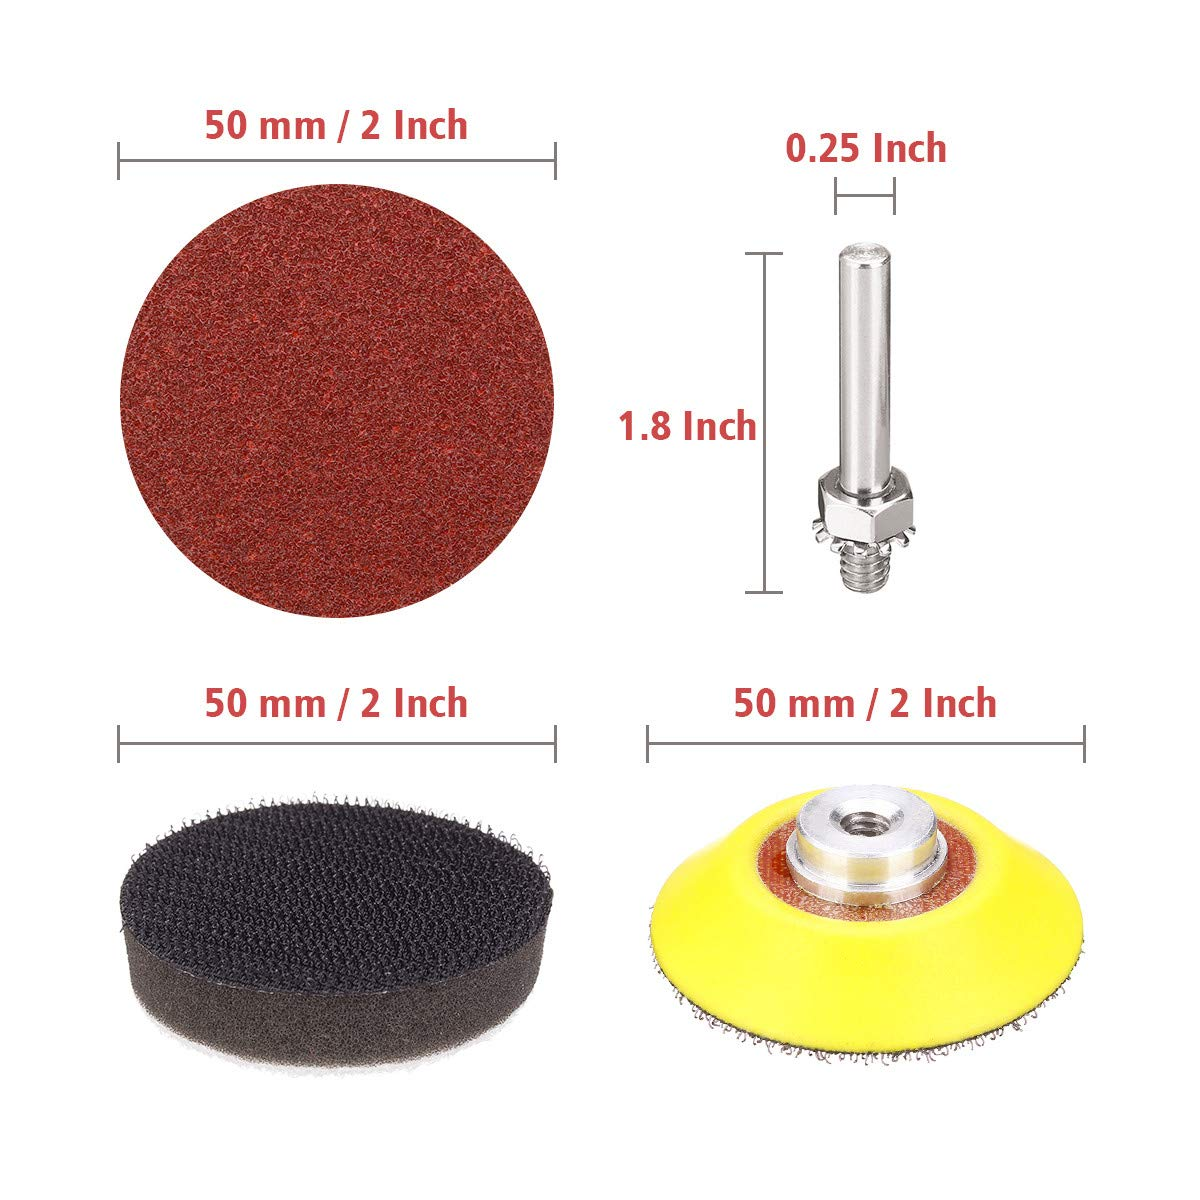 DRILLPRO 120pcs 2 Inch Sanding Discs Pad with 1//4 Shank Backer Plate and 2pcs Sponge Cushions for Drill Grinder Rotary Tools 60-3000 Grit Sandpapers OUTDOOR ELETRONICS